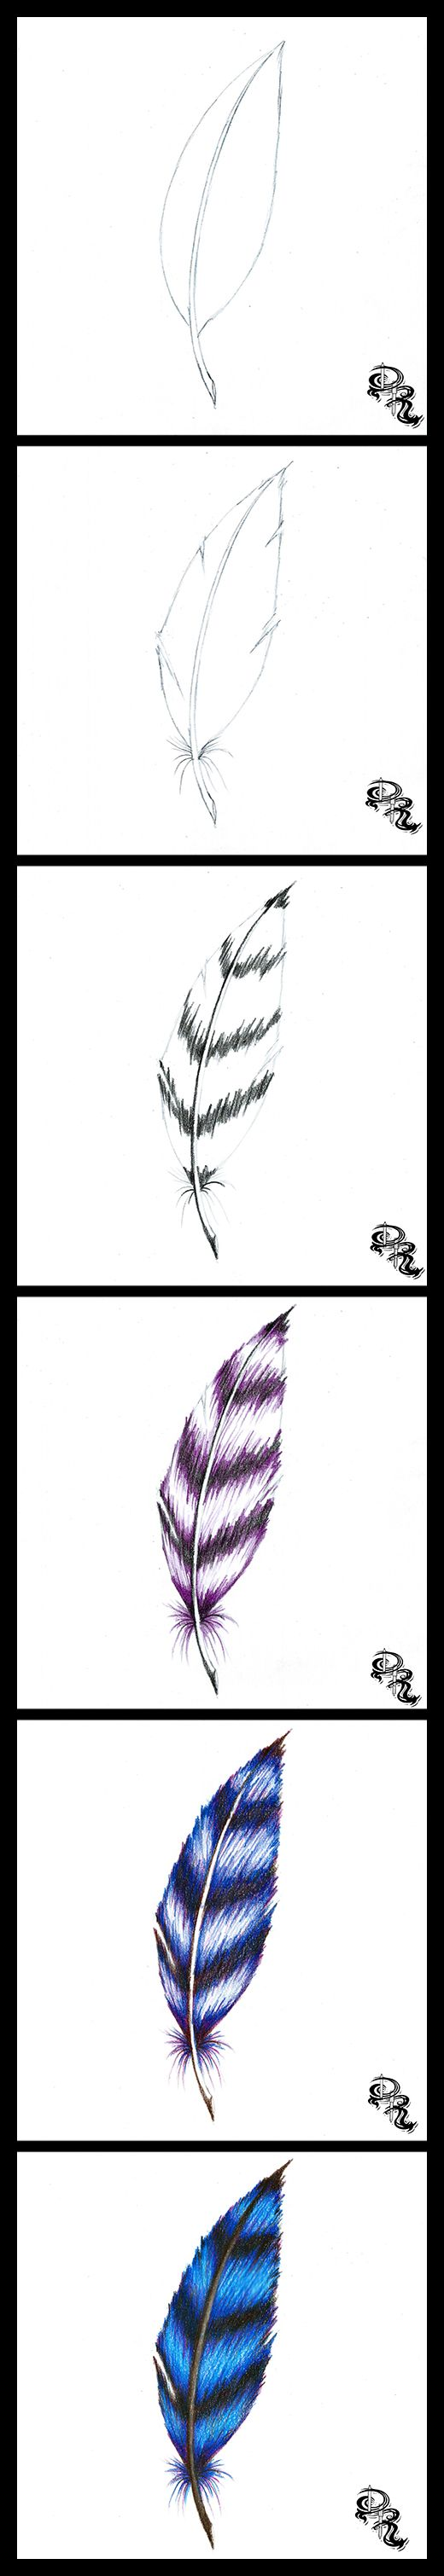 learn how to draw a feather